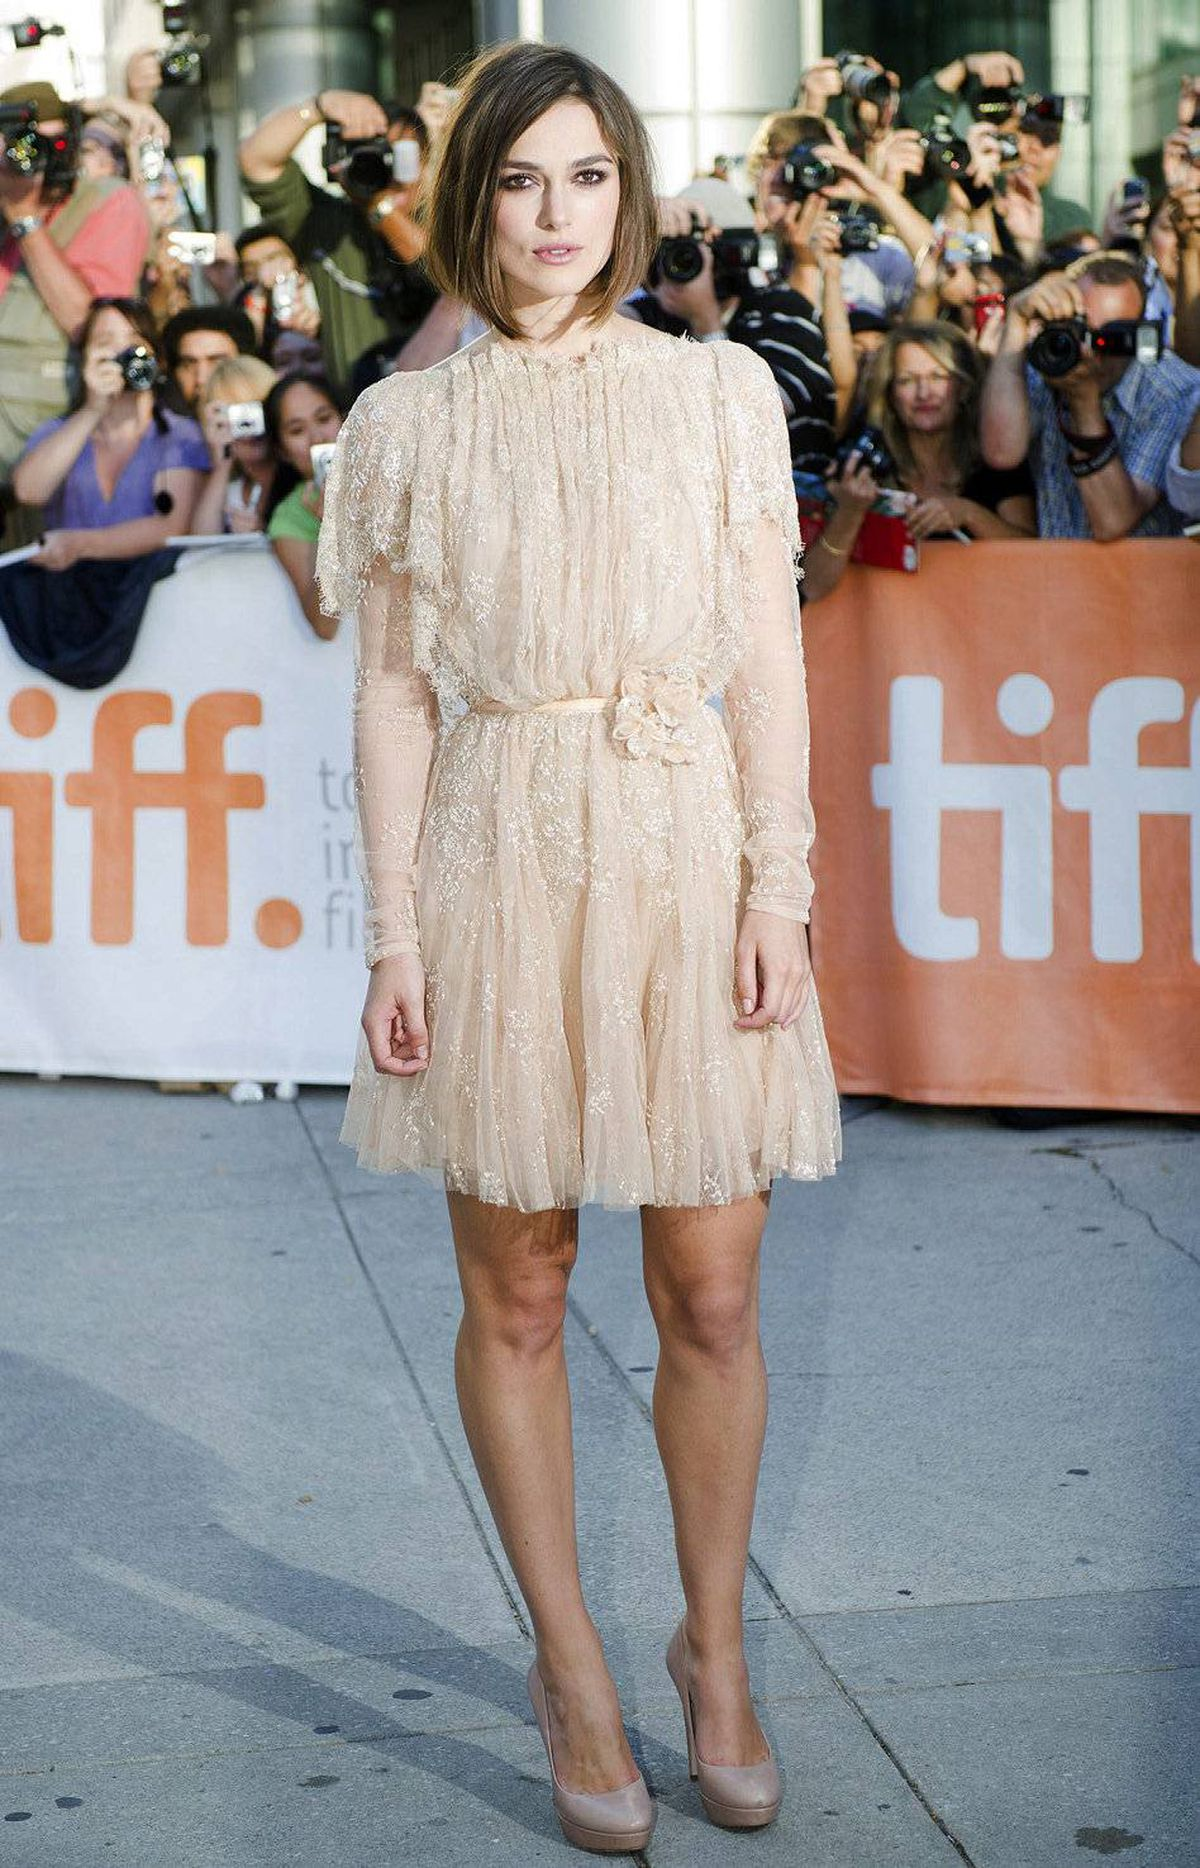 """Actors Keira Knightley poses for a photograph on the red carpet before the screening of the new movie """"A Dangerous Method"""" at the Toronto International Film Festival in Toronto on Saturday, Sept., 10, 2011. THE"""